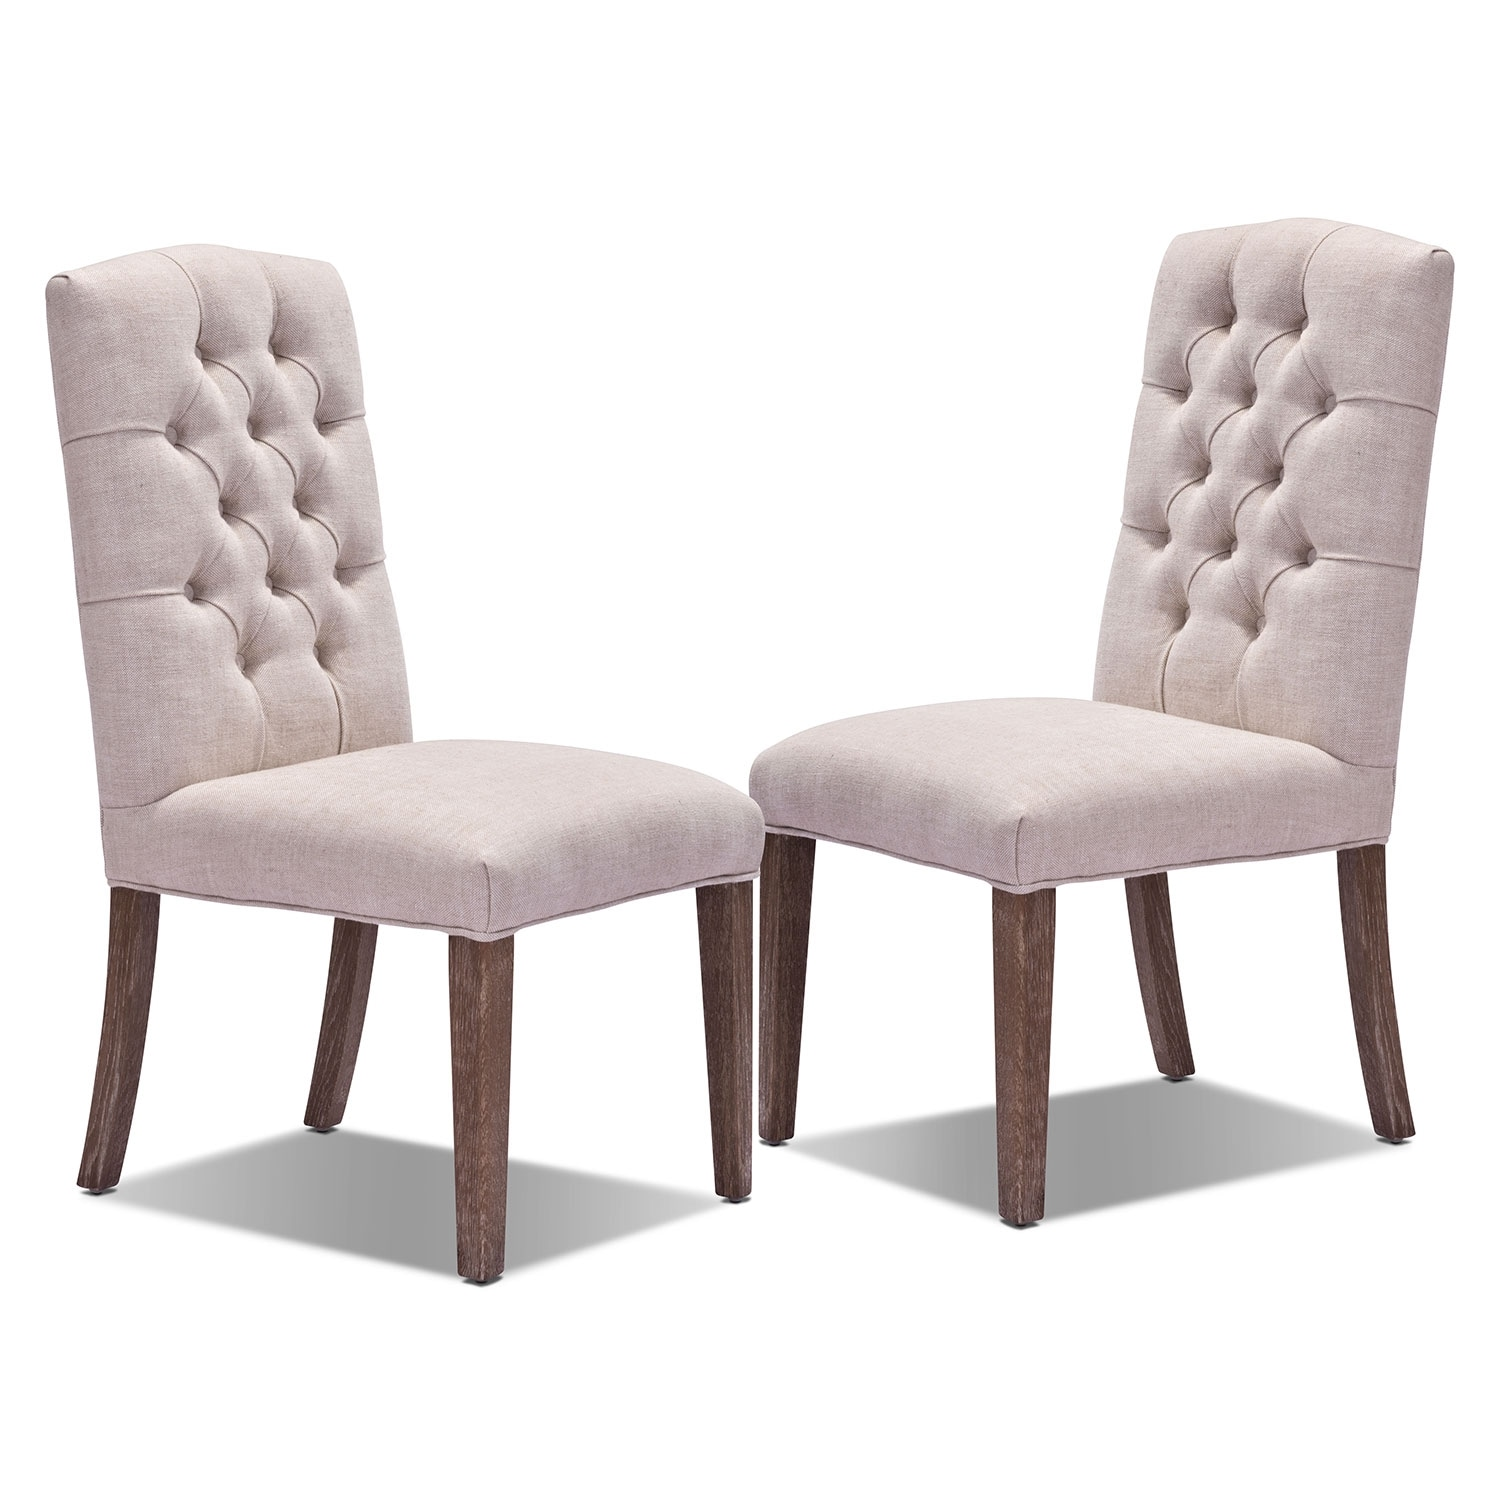 Dining room chairs seating american signature furniture for 2 dining room chairs